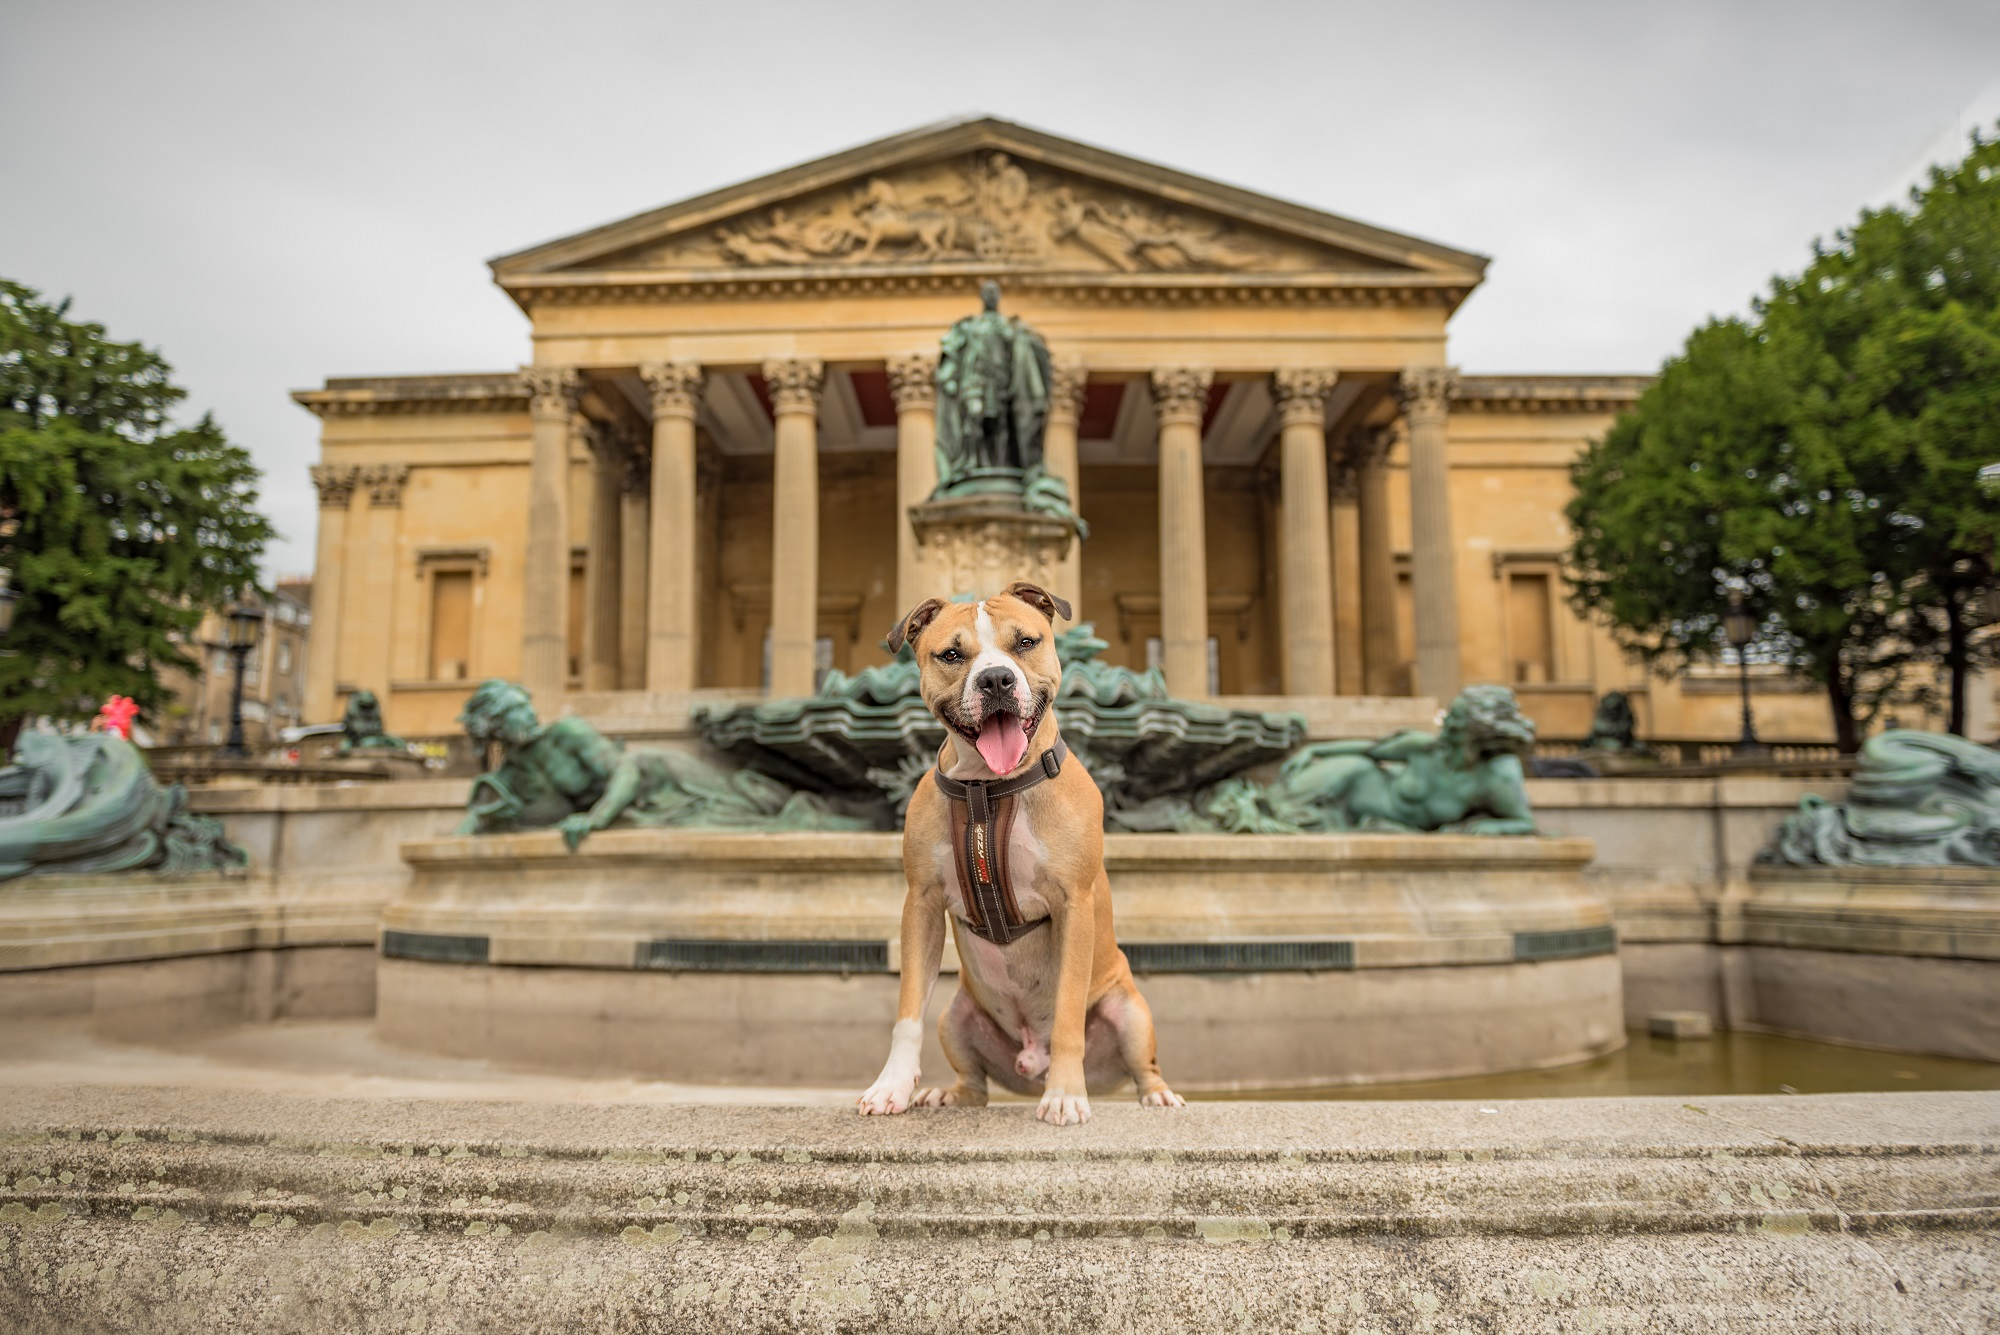 #StaffieSeptember - Staffies take to modelling in the hope of finding a new home